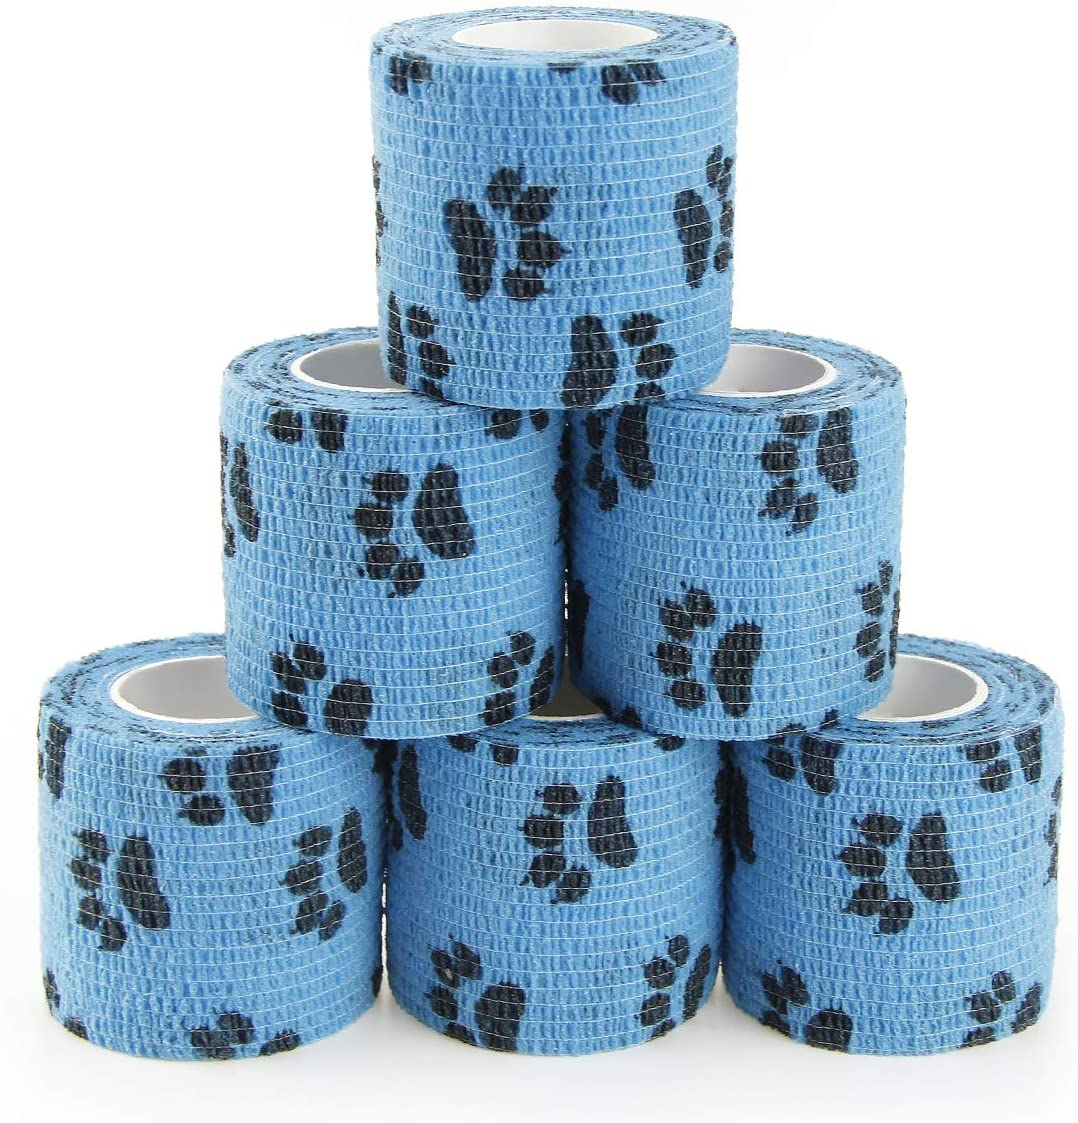 MUEUSS Vet Wrap Pet First Aid Tape Waterproof Self Adherent Cohesive Bandage for Dogs Cats Horses Breathable Non-Woven Elastic Sport Tape for Arm Knee Ankle Sprain (6 Rolls, 2